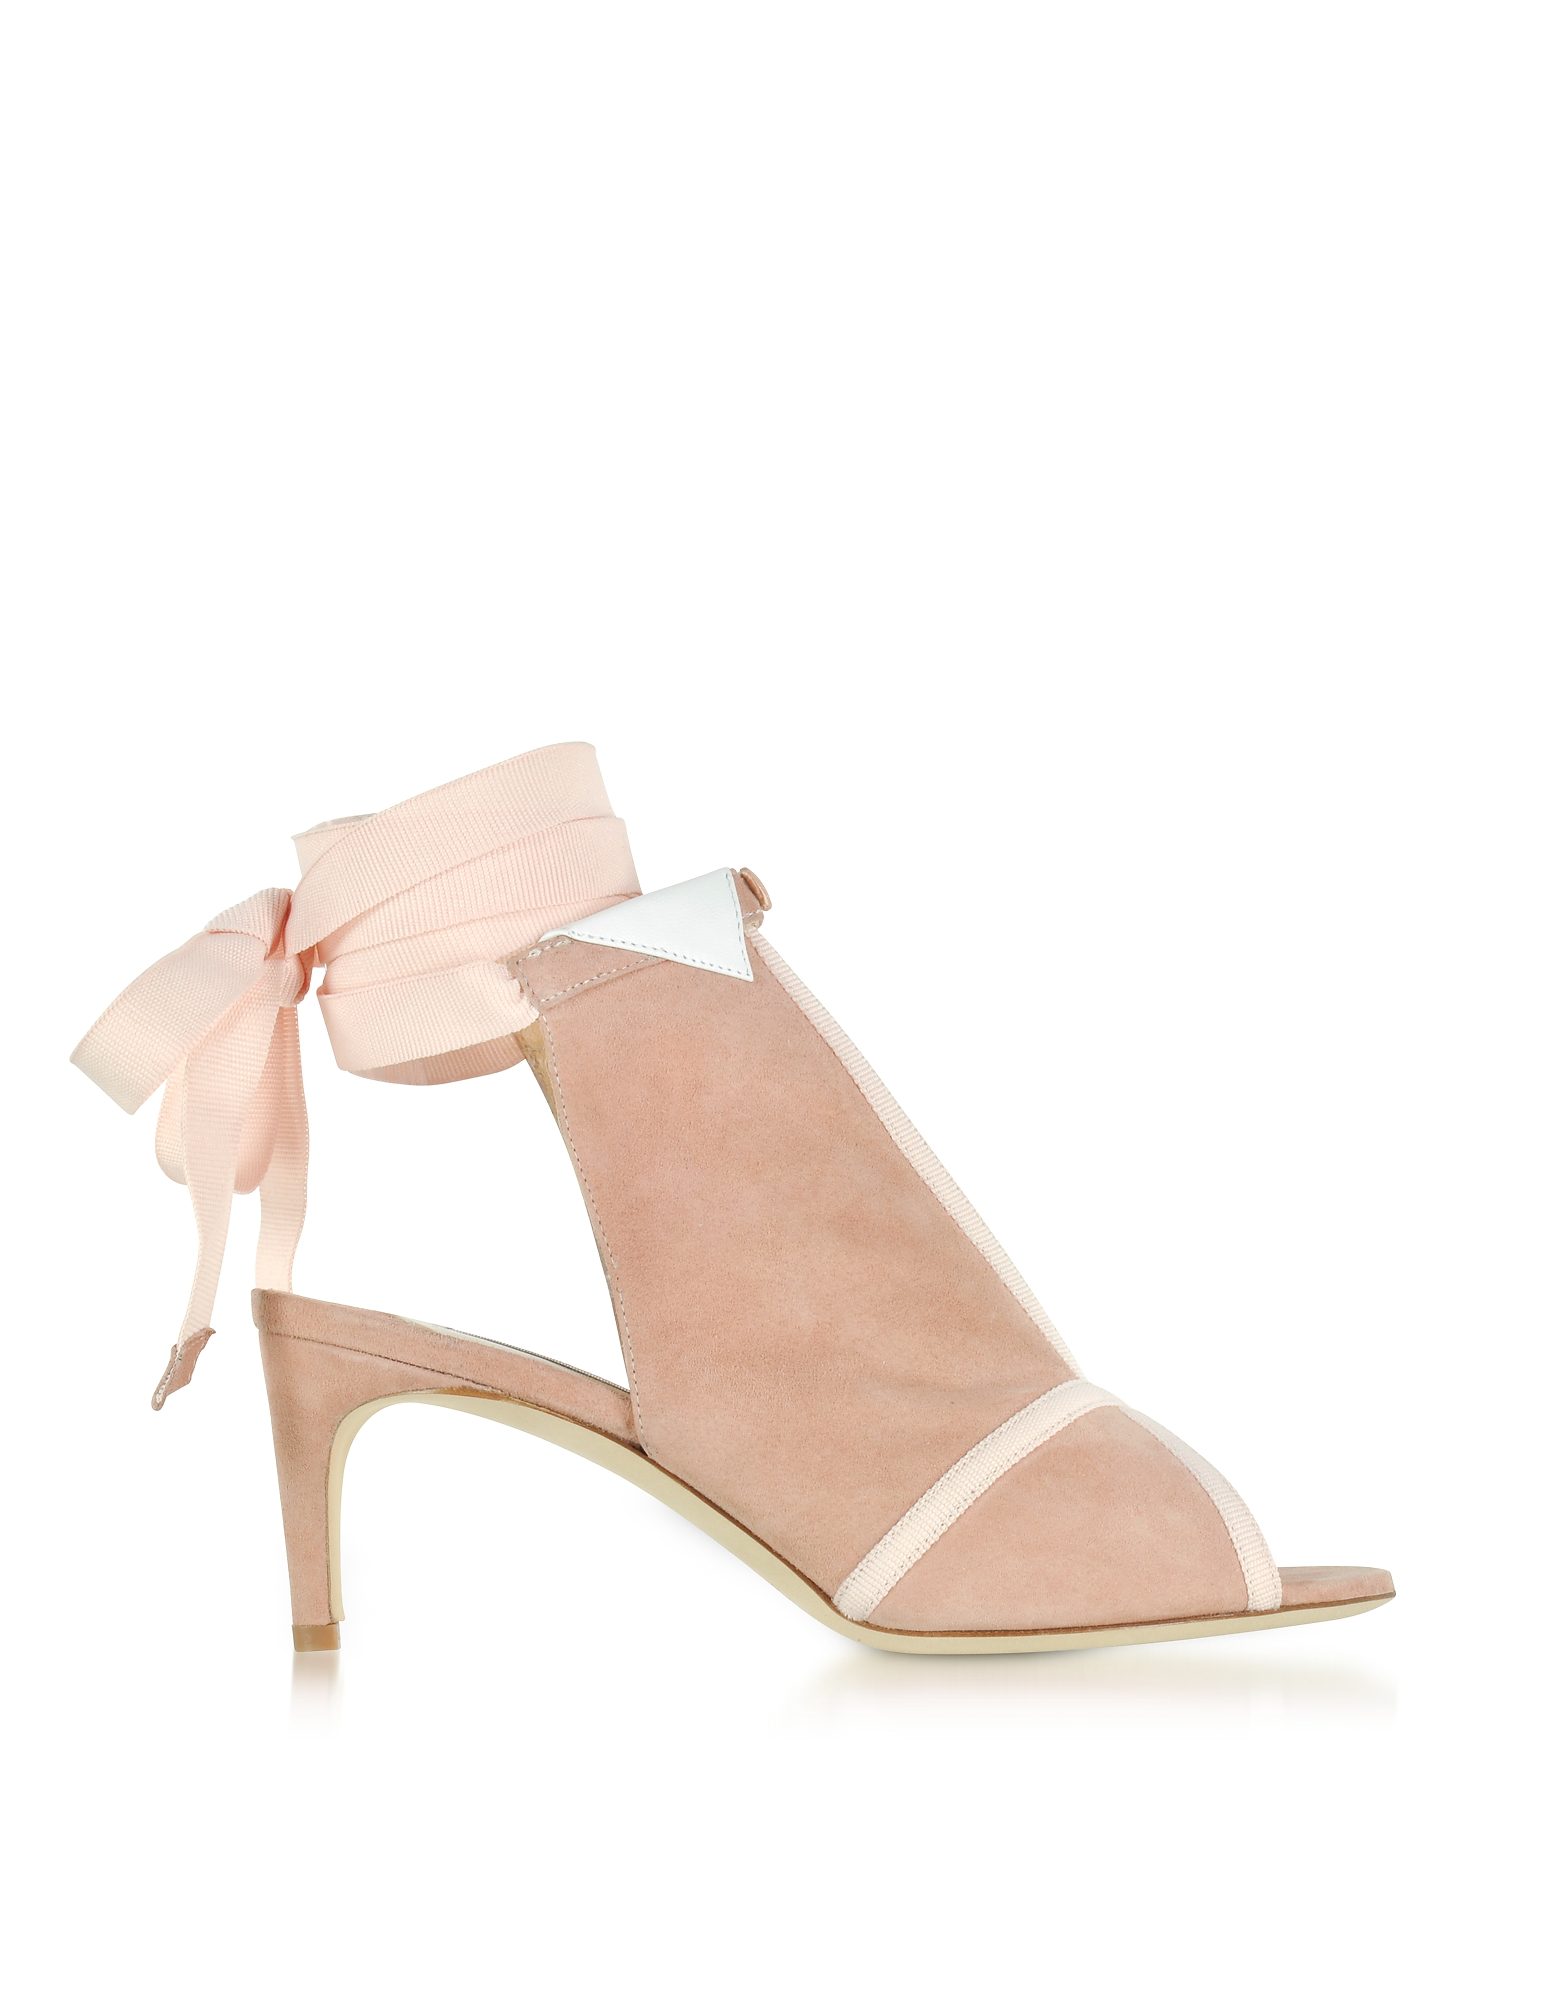 Olgana Paris Shoes, La Jolie Pink Suede Mid-Heel Sandals